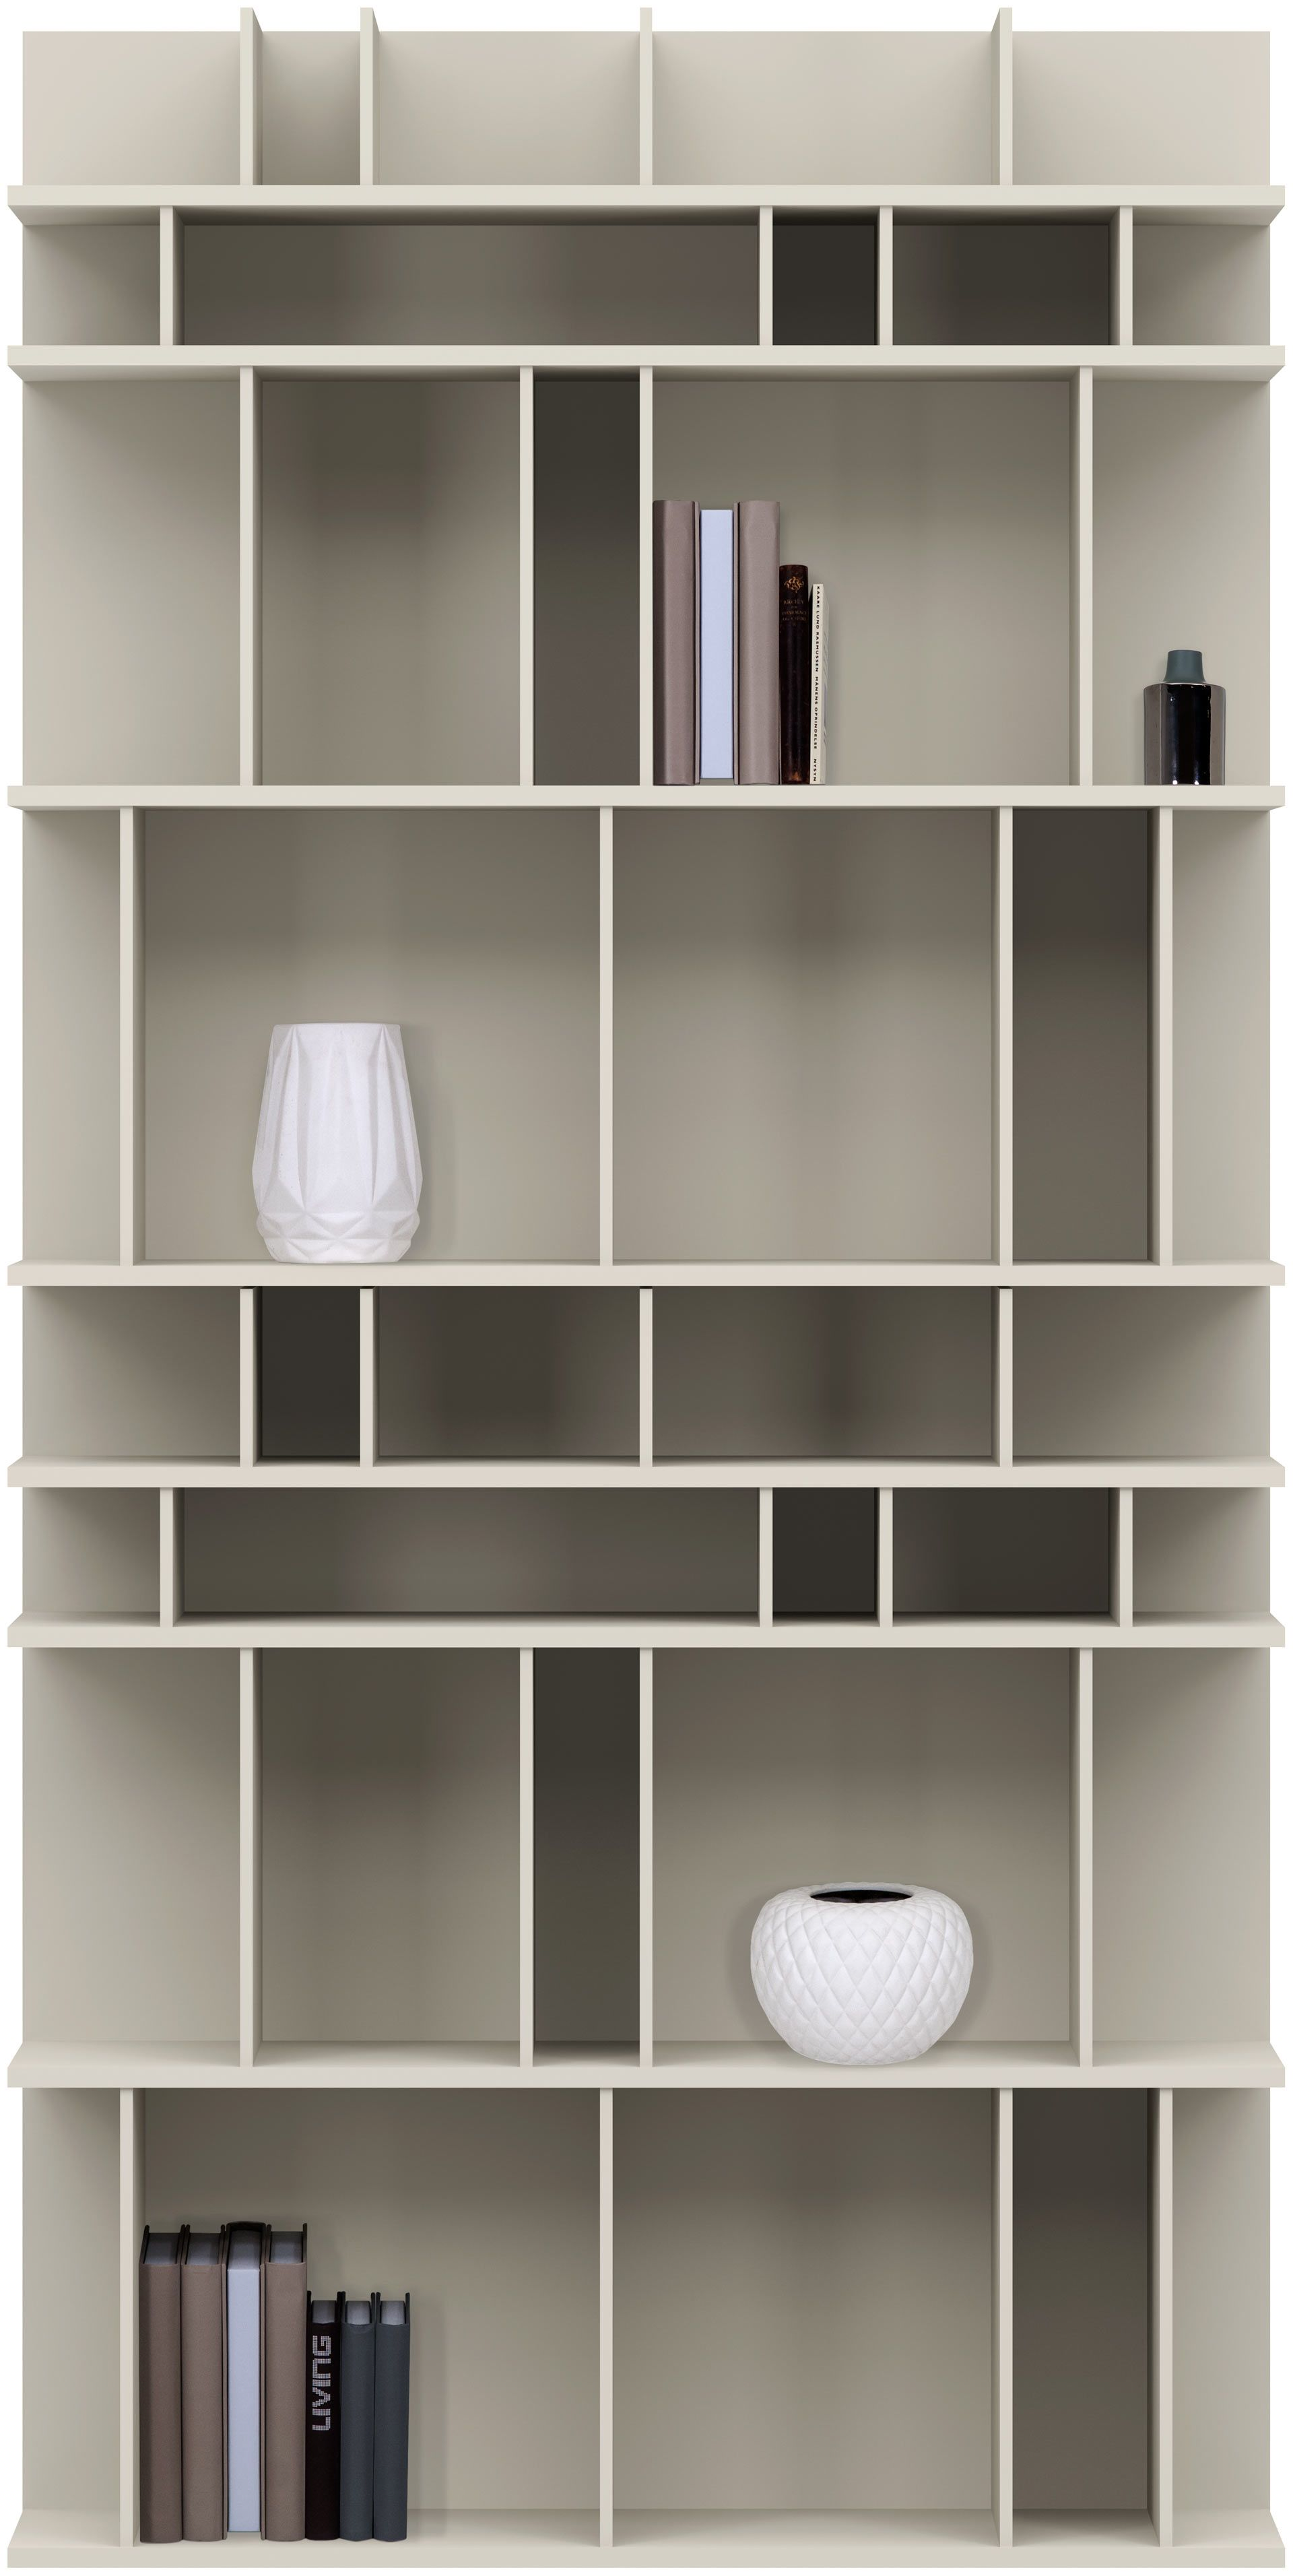 saving furniture fantastic simple accessories using with wall spa bookshelf wood neat mounted for and space walnut modern decorative various home decoration interior